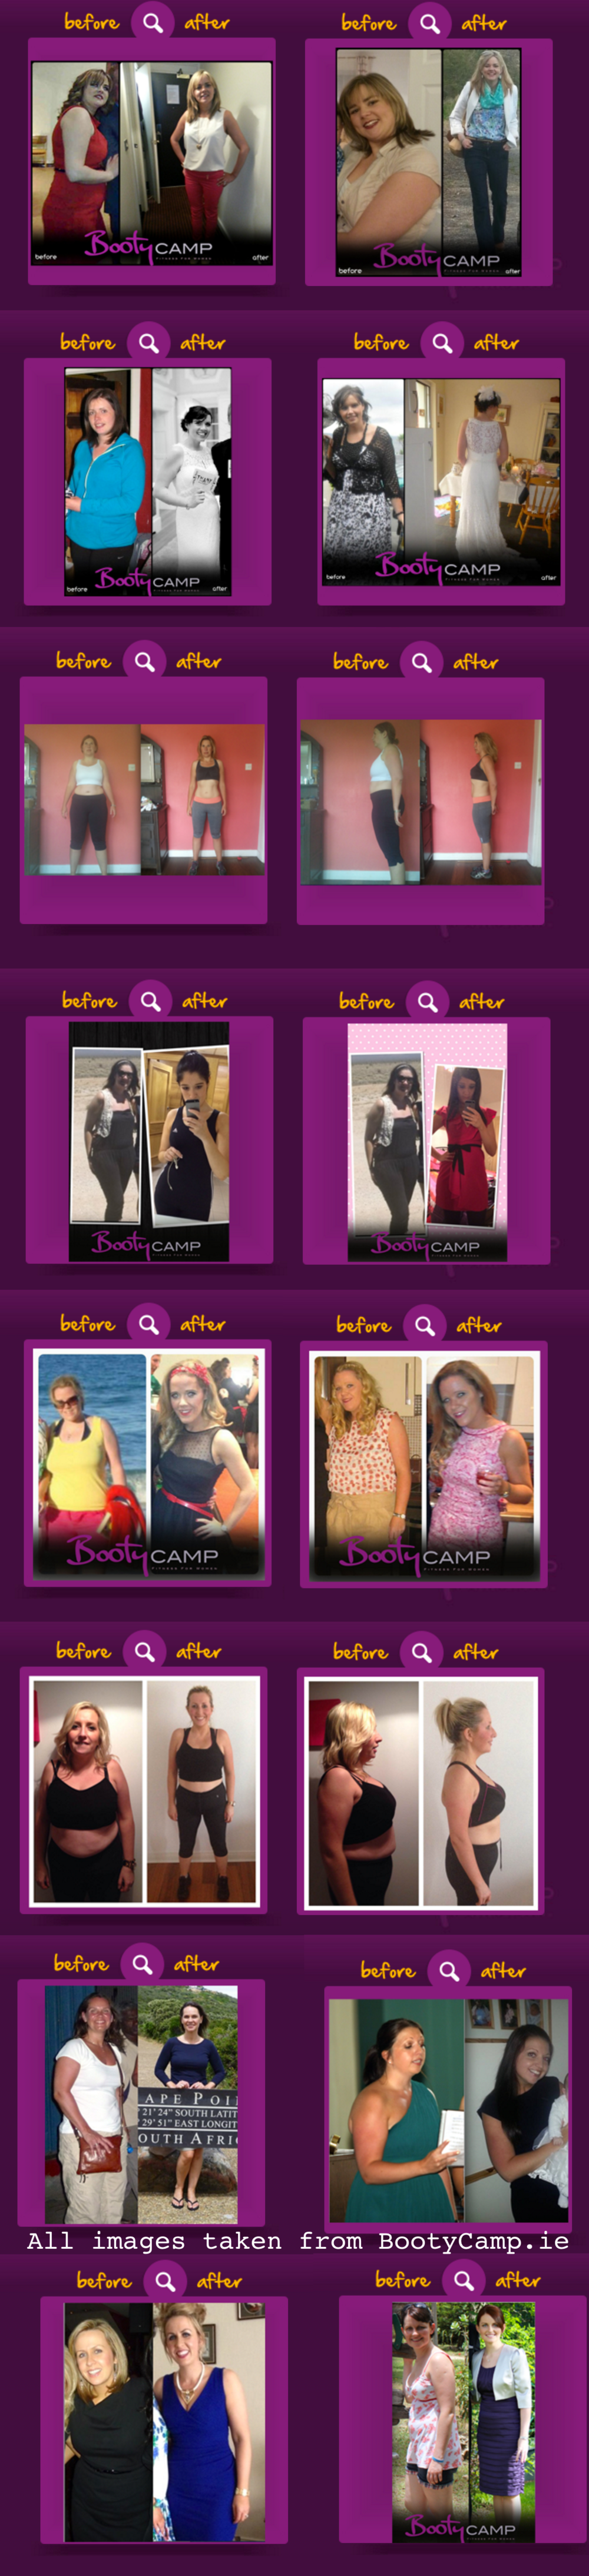 before after images boot camp amazing transofrmations